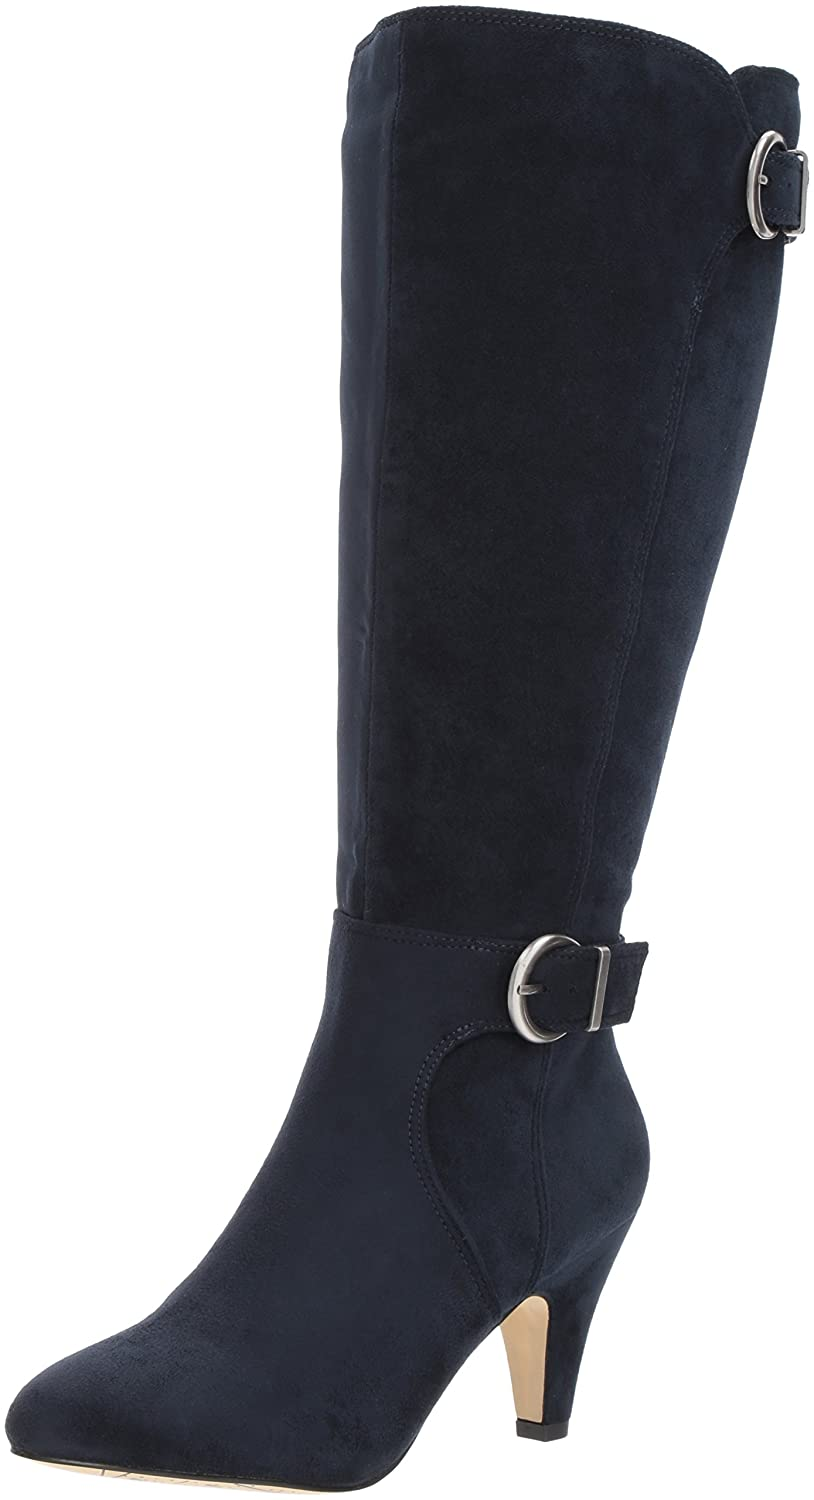 Bella Vita Women's Toni Ii Plus Harness Boot B06ZY83JYB 12 B(M) US|Navy Super Suede